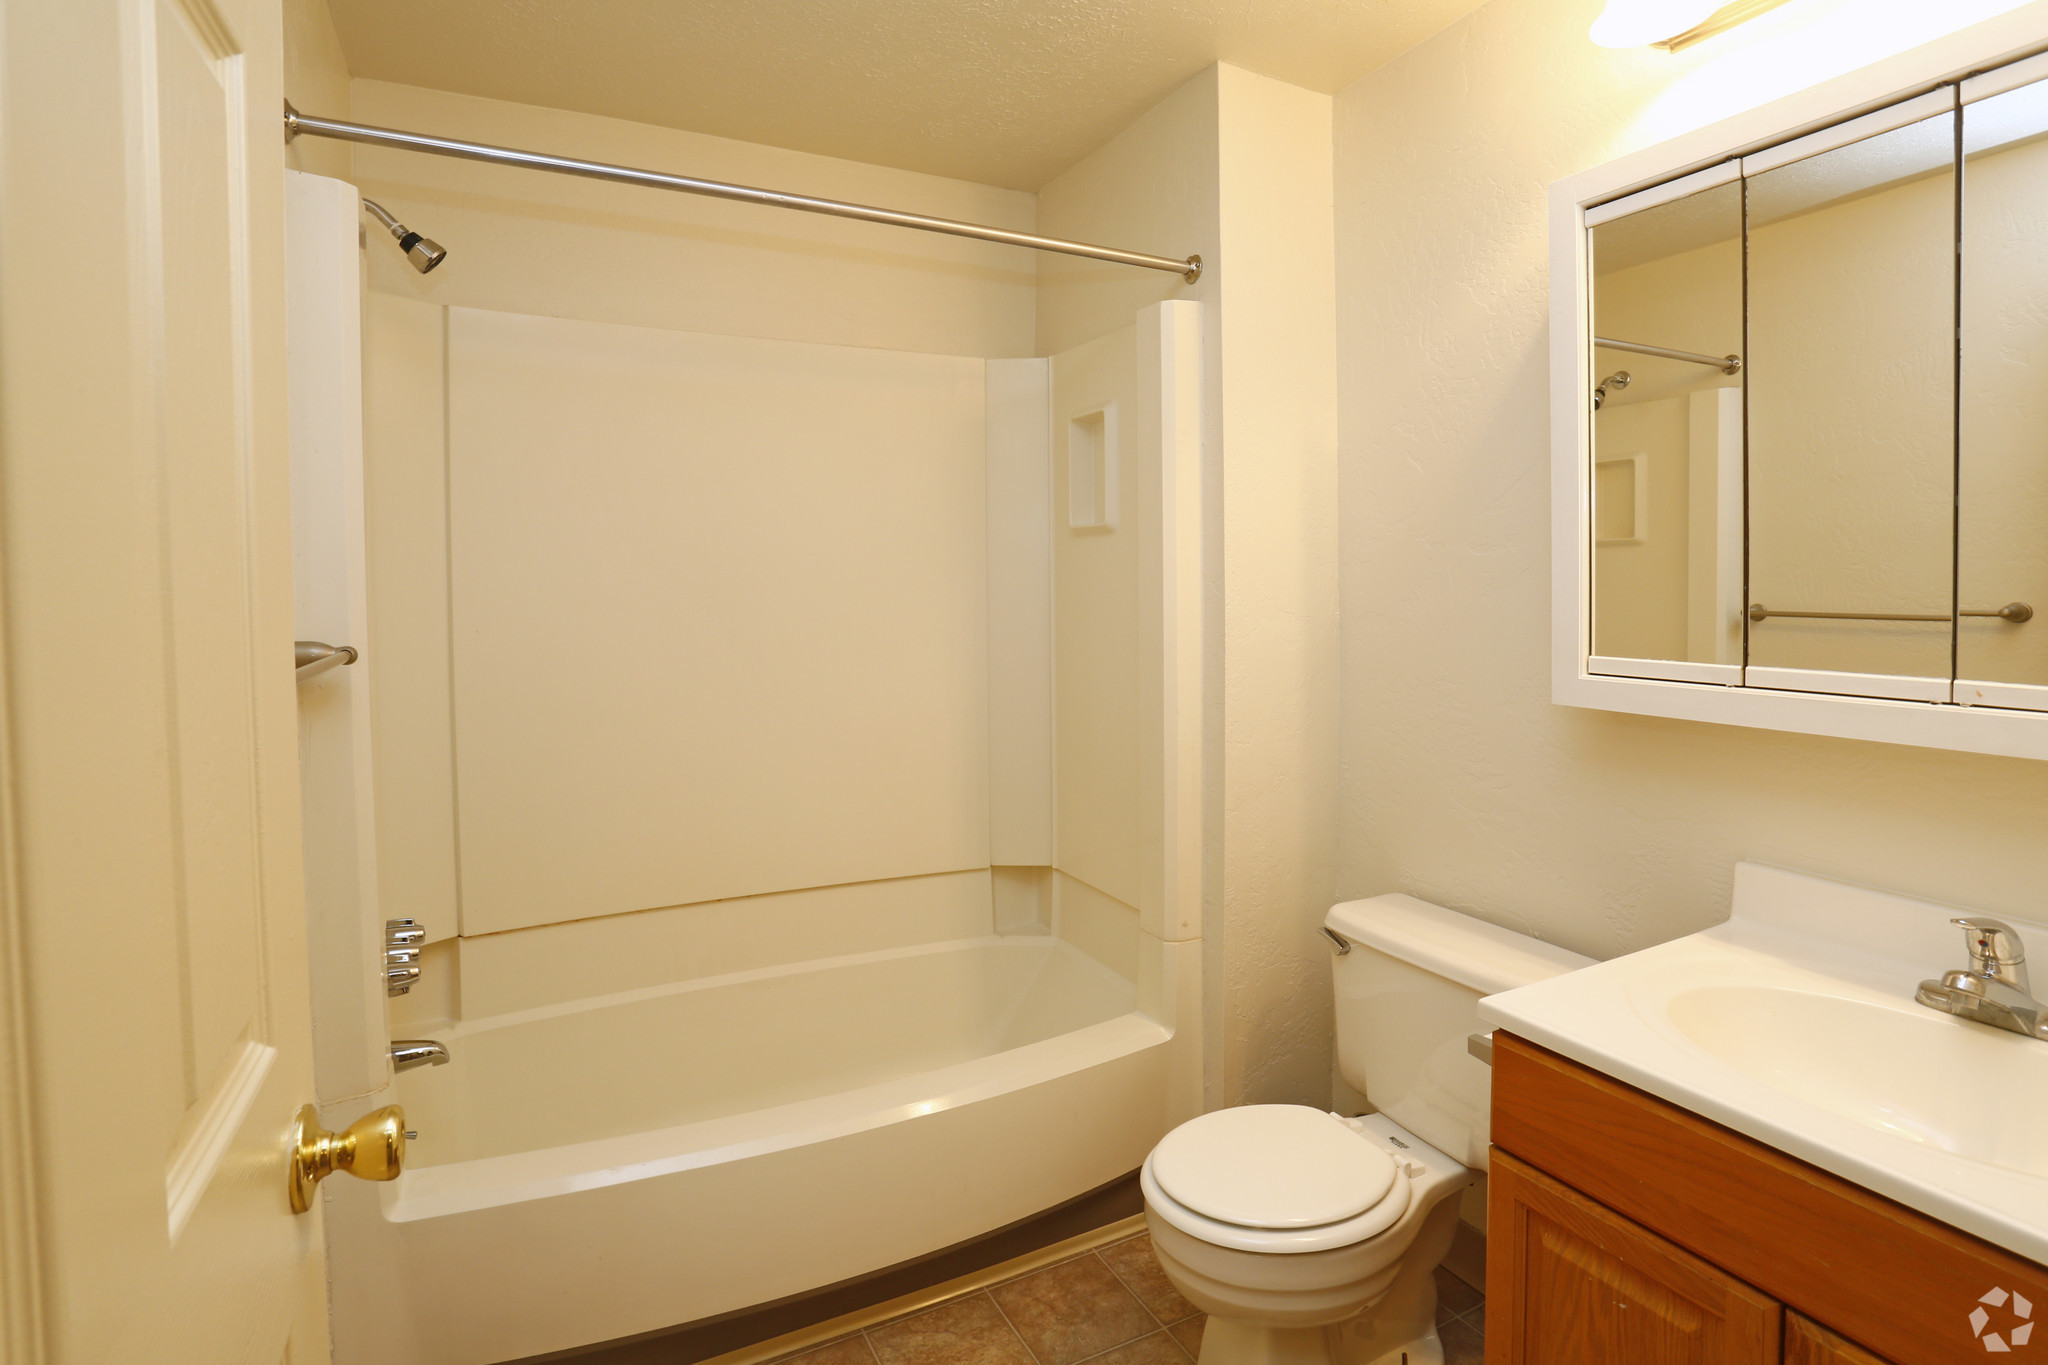 Remarkable 22 Holiday Park Apartments And Townhomes Pittsburgh Pa 2Br Interior Design Ideas Clesiryabchikinfo